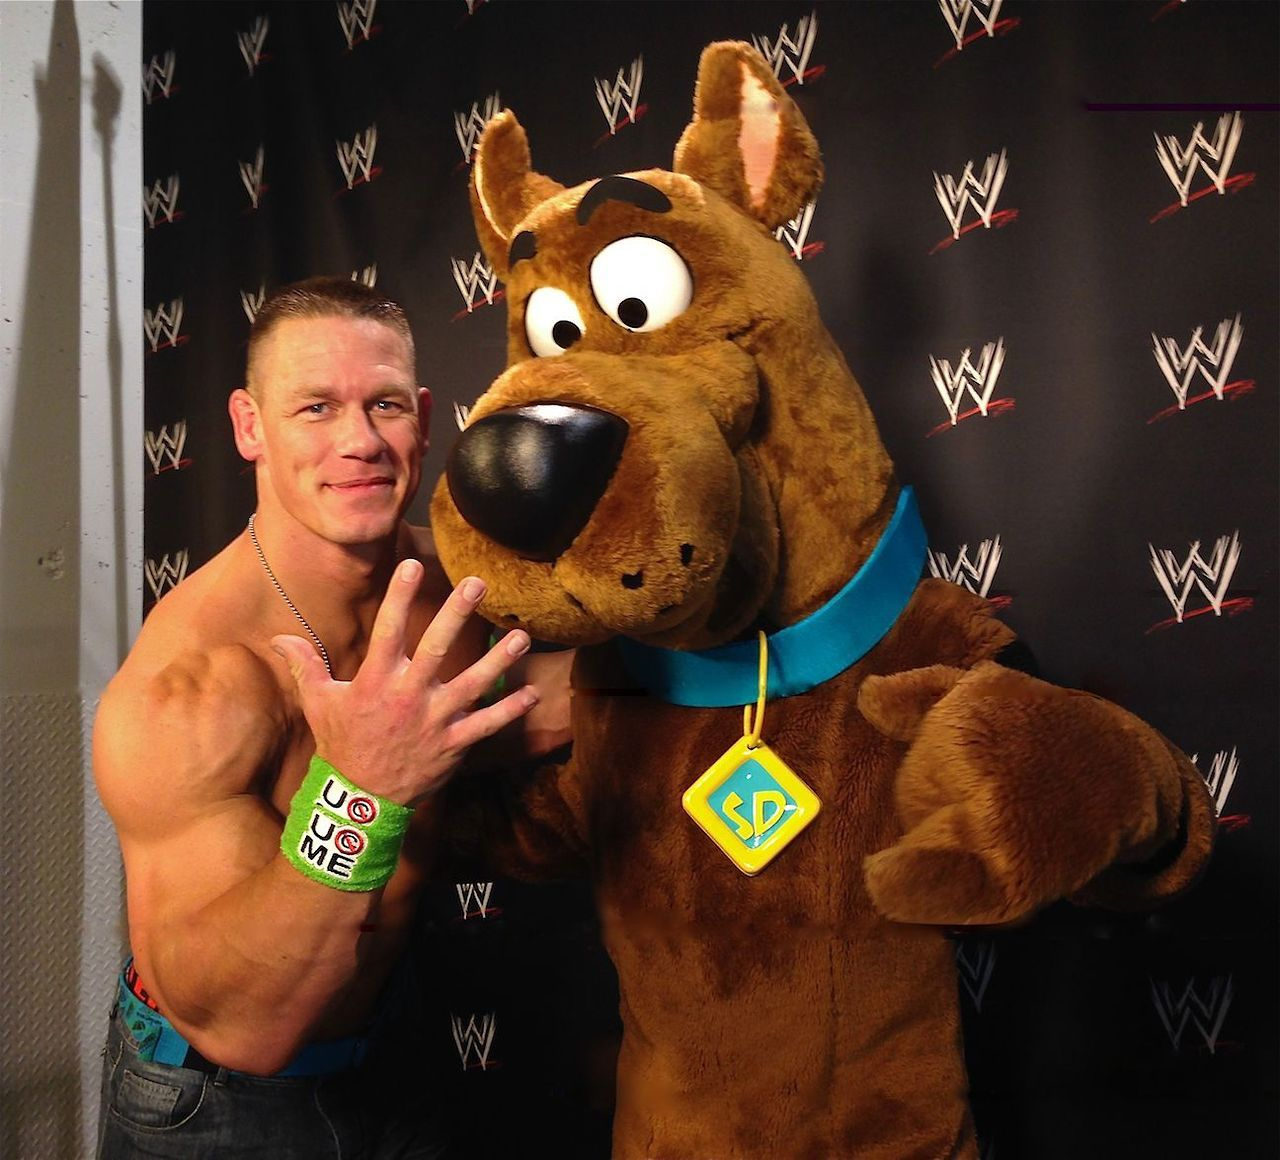 WWE John Cena Mobile Wallpapers Wallpaper HD Wallpapers